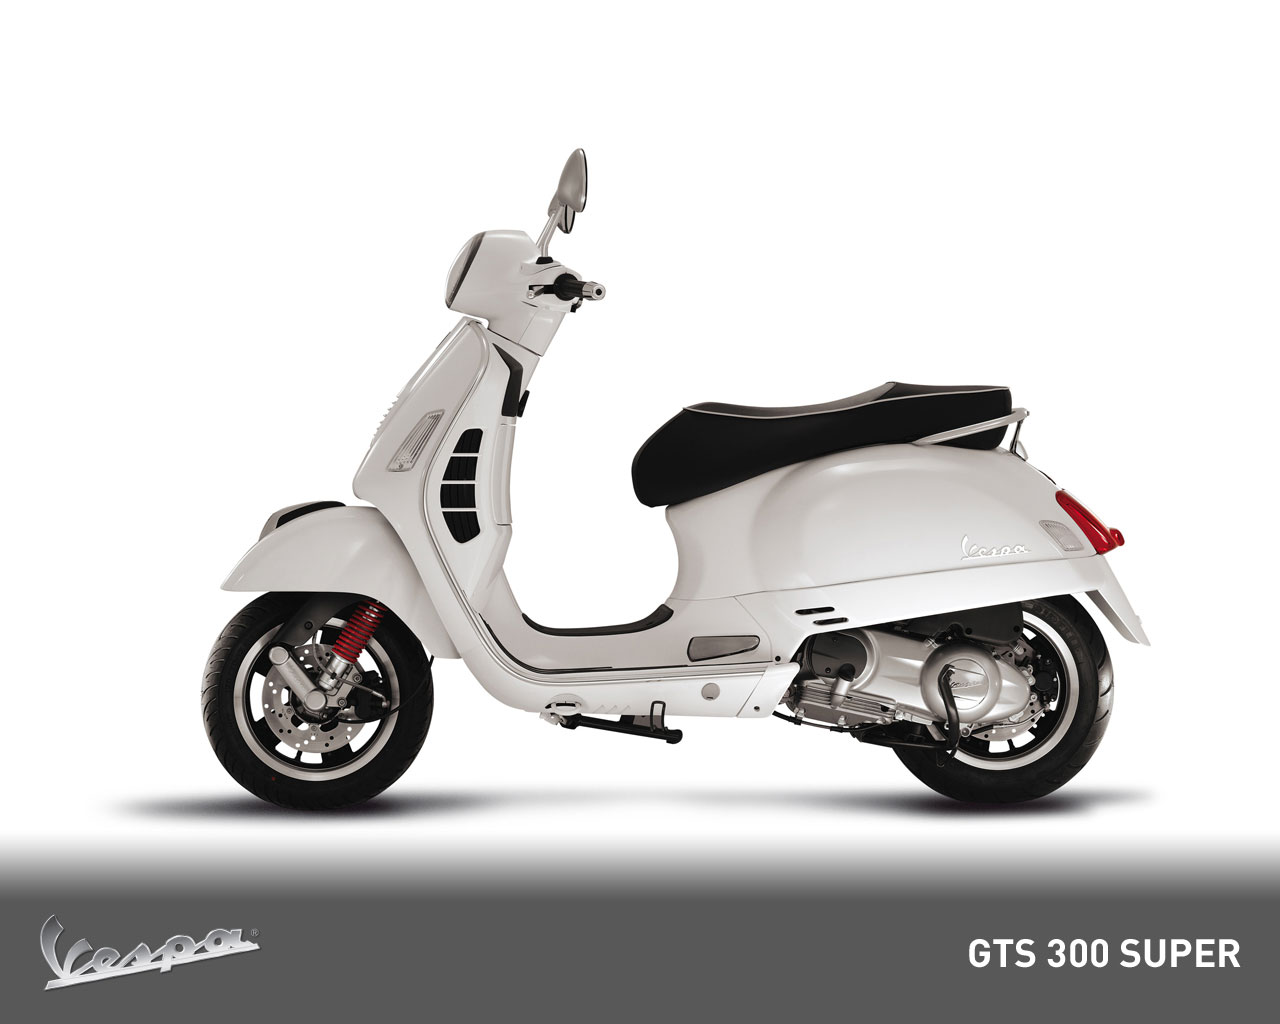 vespa pictures vespa gts 300 super 2010. Black Bedroom Furniture Sets. Home Design Ideas